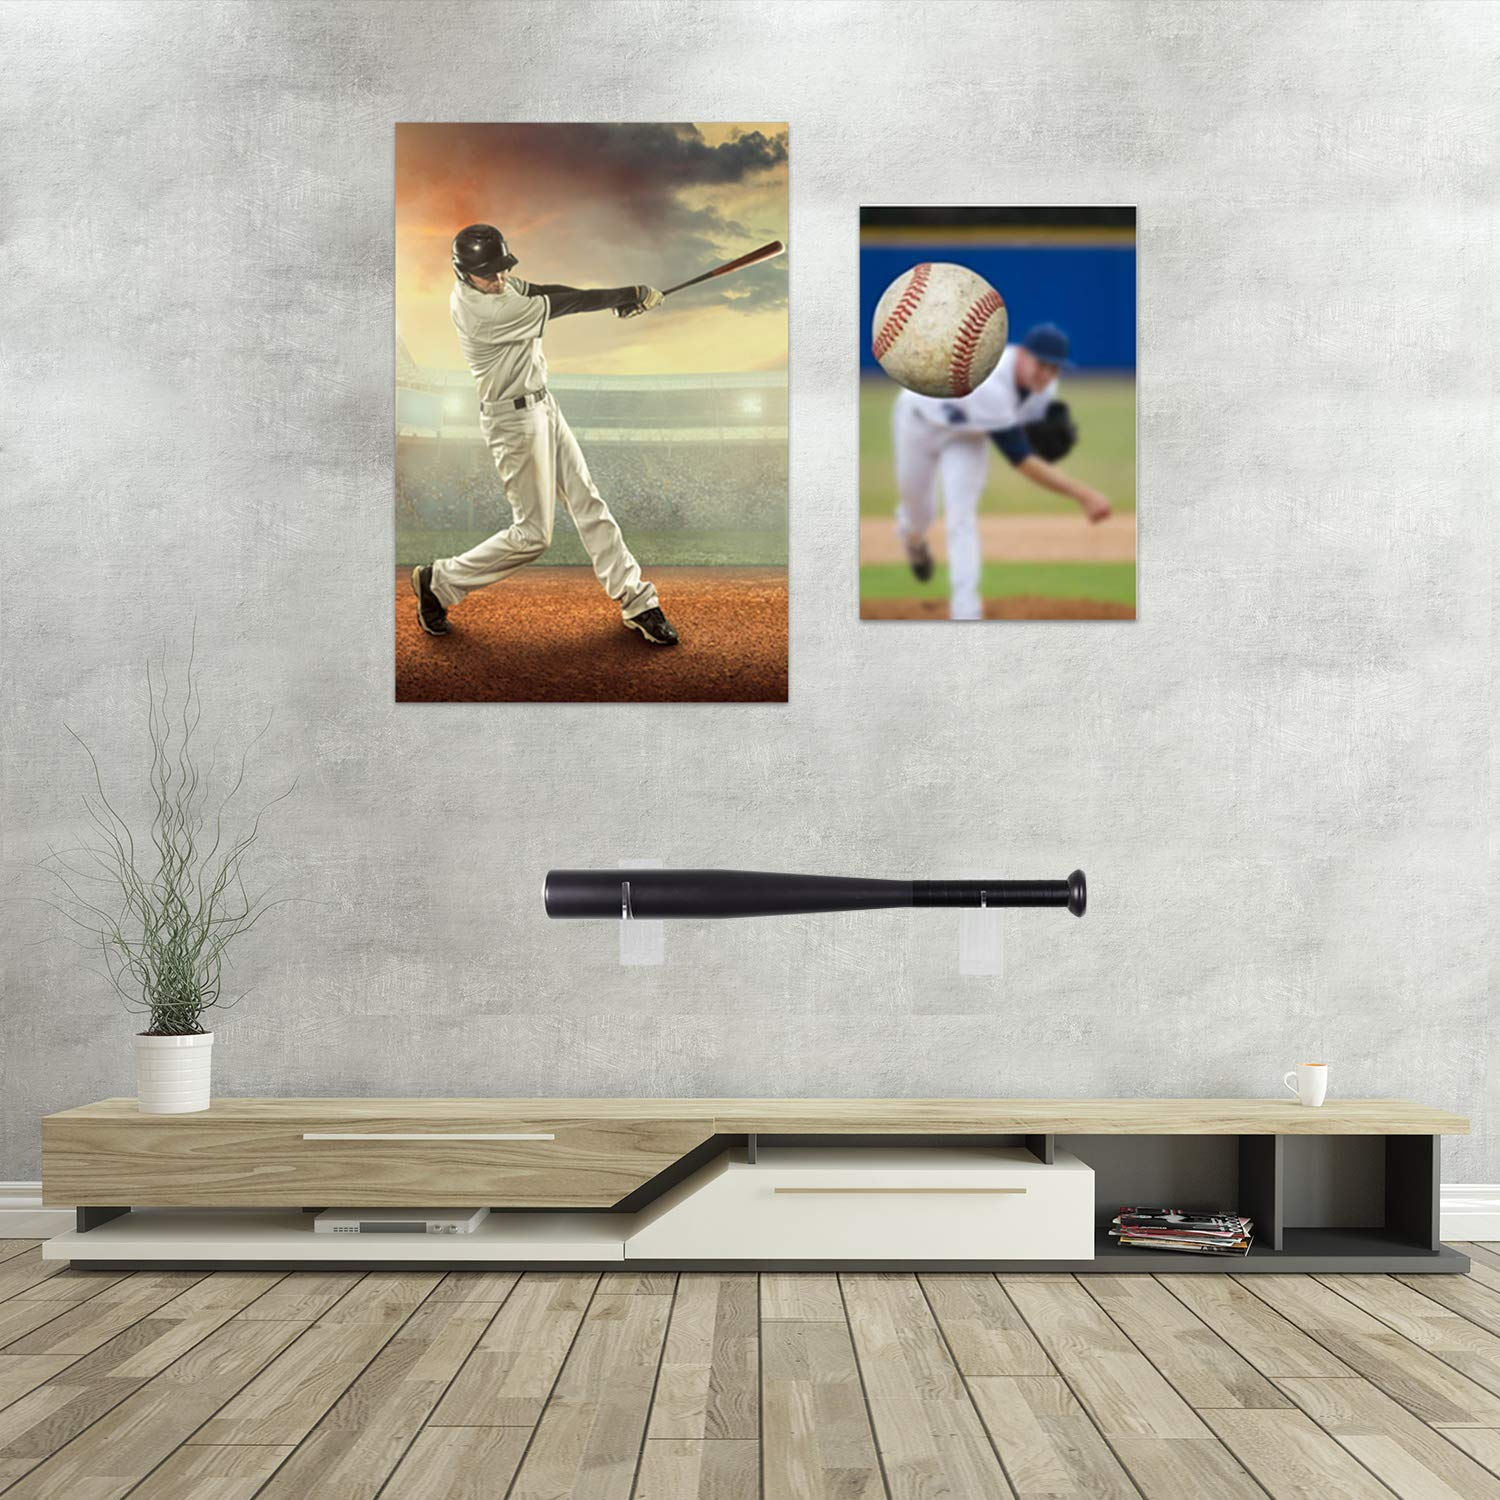 2 Pairs Clear Acrylic Bat Wall Mount Baseball Bat Display Holder with Screws and Non-Nail Double-Sided Tape for Storage